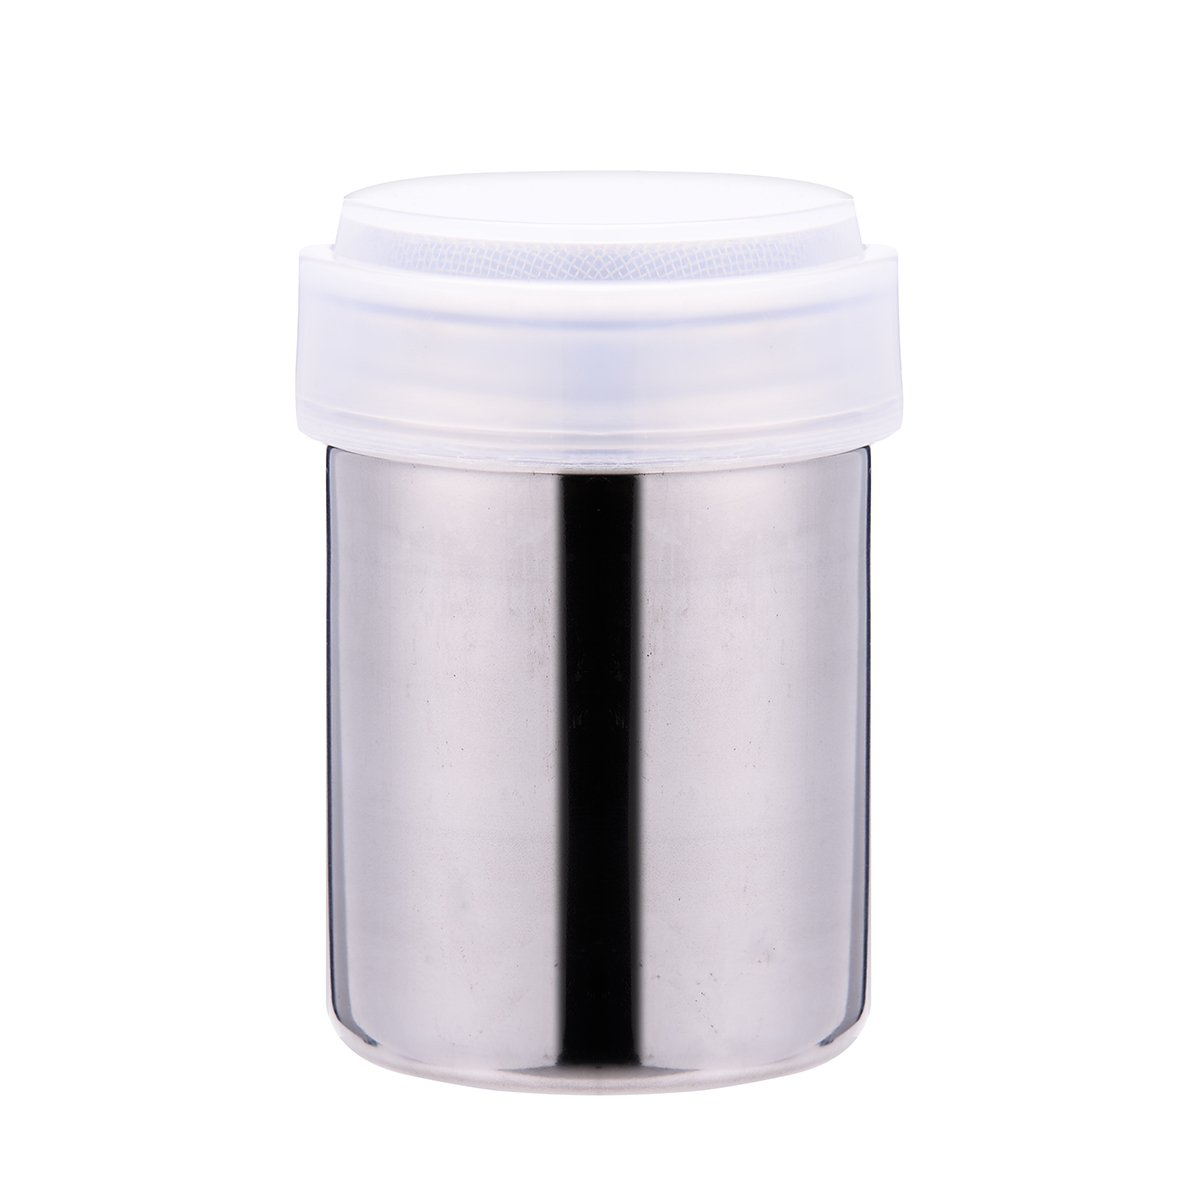 Stainless Steel Powder Shakers Mesh Shaker Powder Cans for Coffee Cocoa Cinnamon Powder 1 Pcs